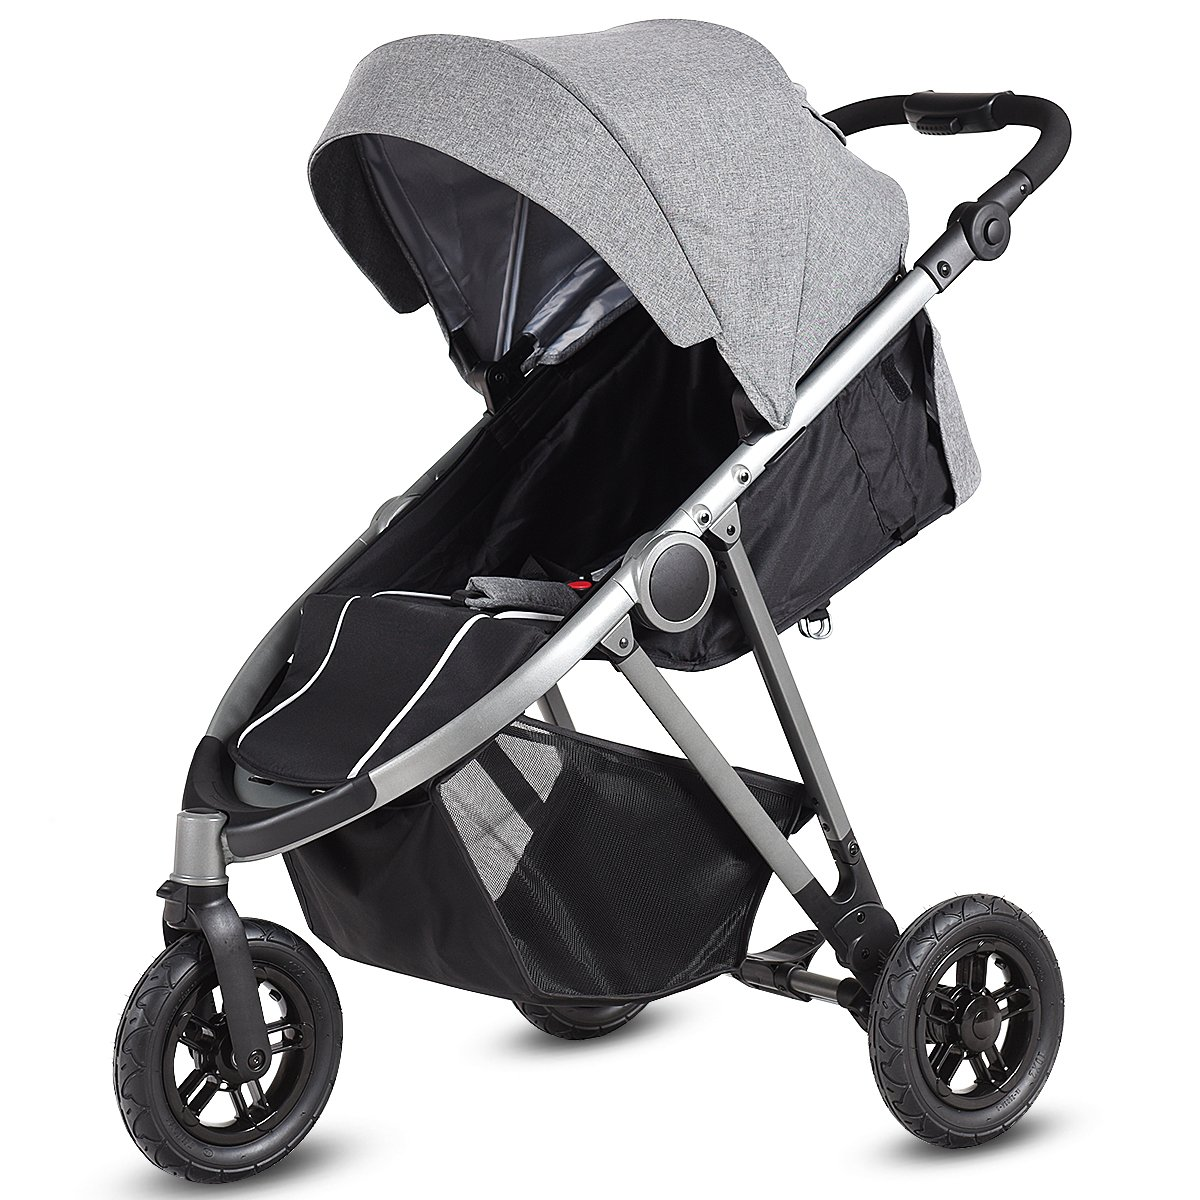 BABY JOY Jogger Stroller, 3-Wheel Baby Travel Stroller, Reclining Seat with Adjustable Handlebar and Storage Basket